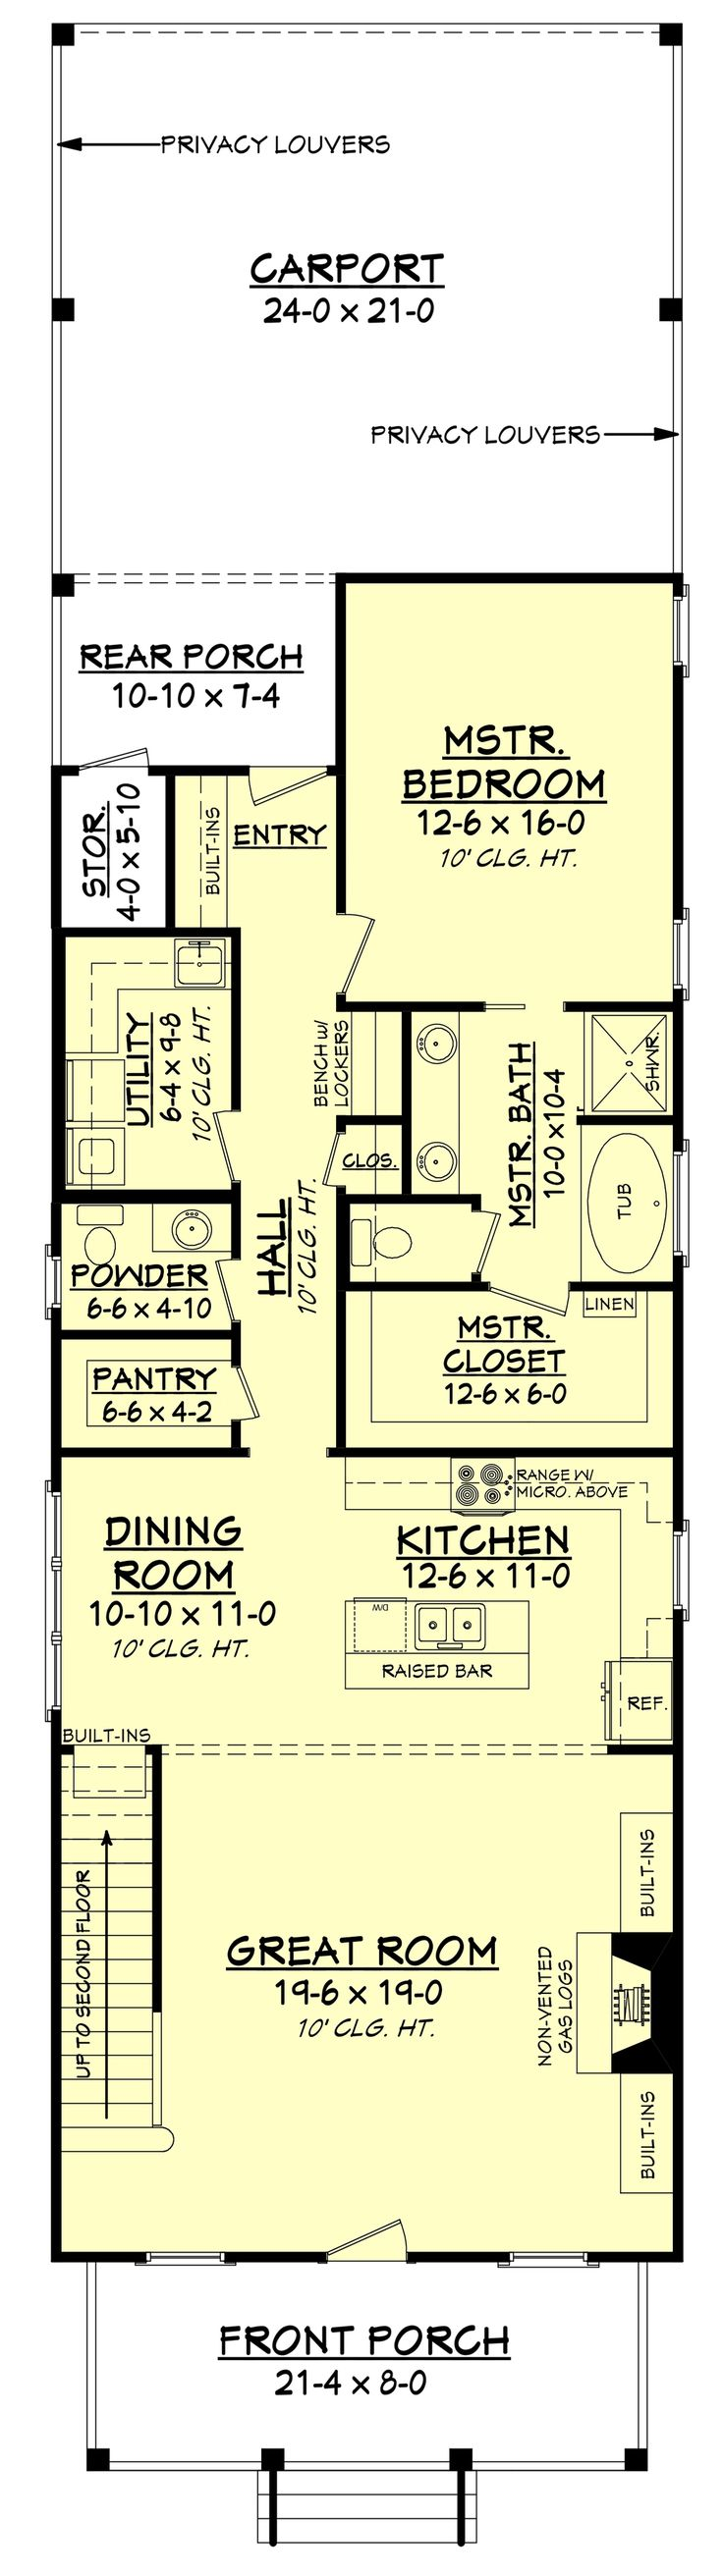 441 best house plans images on pinterest house floor plans this narrow lot 4 bedroom bath cottage style home has a grand appeal with ceilings throughout the first floor and good storage spaces